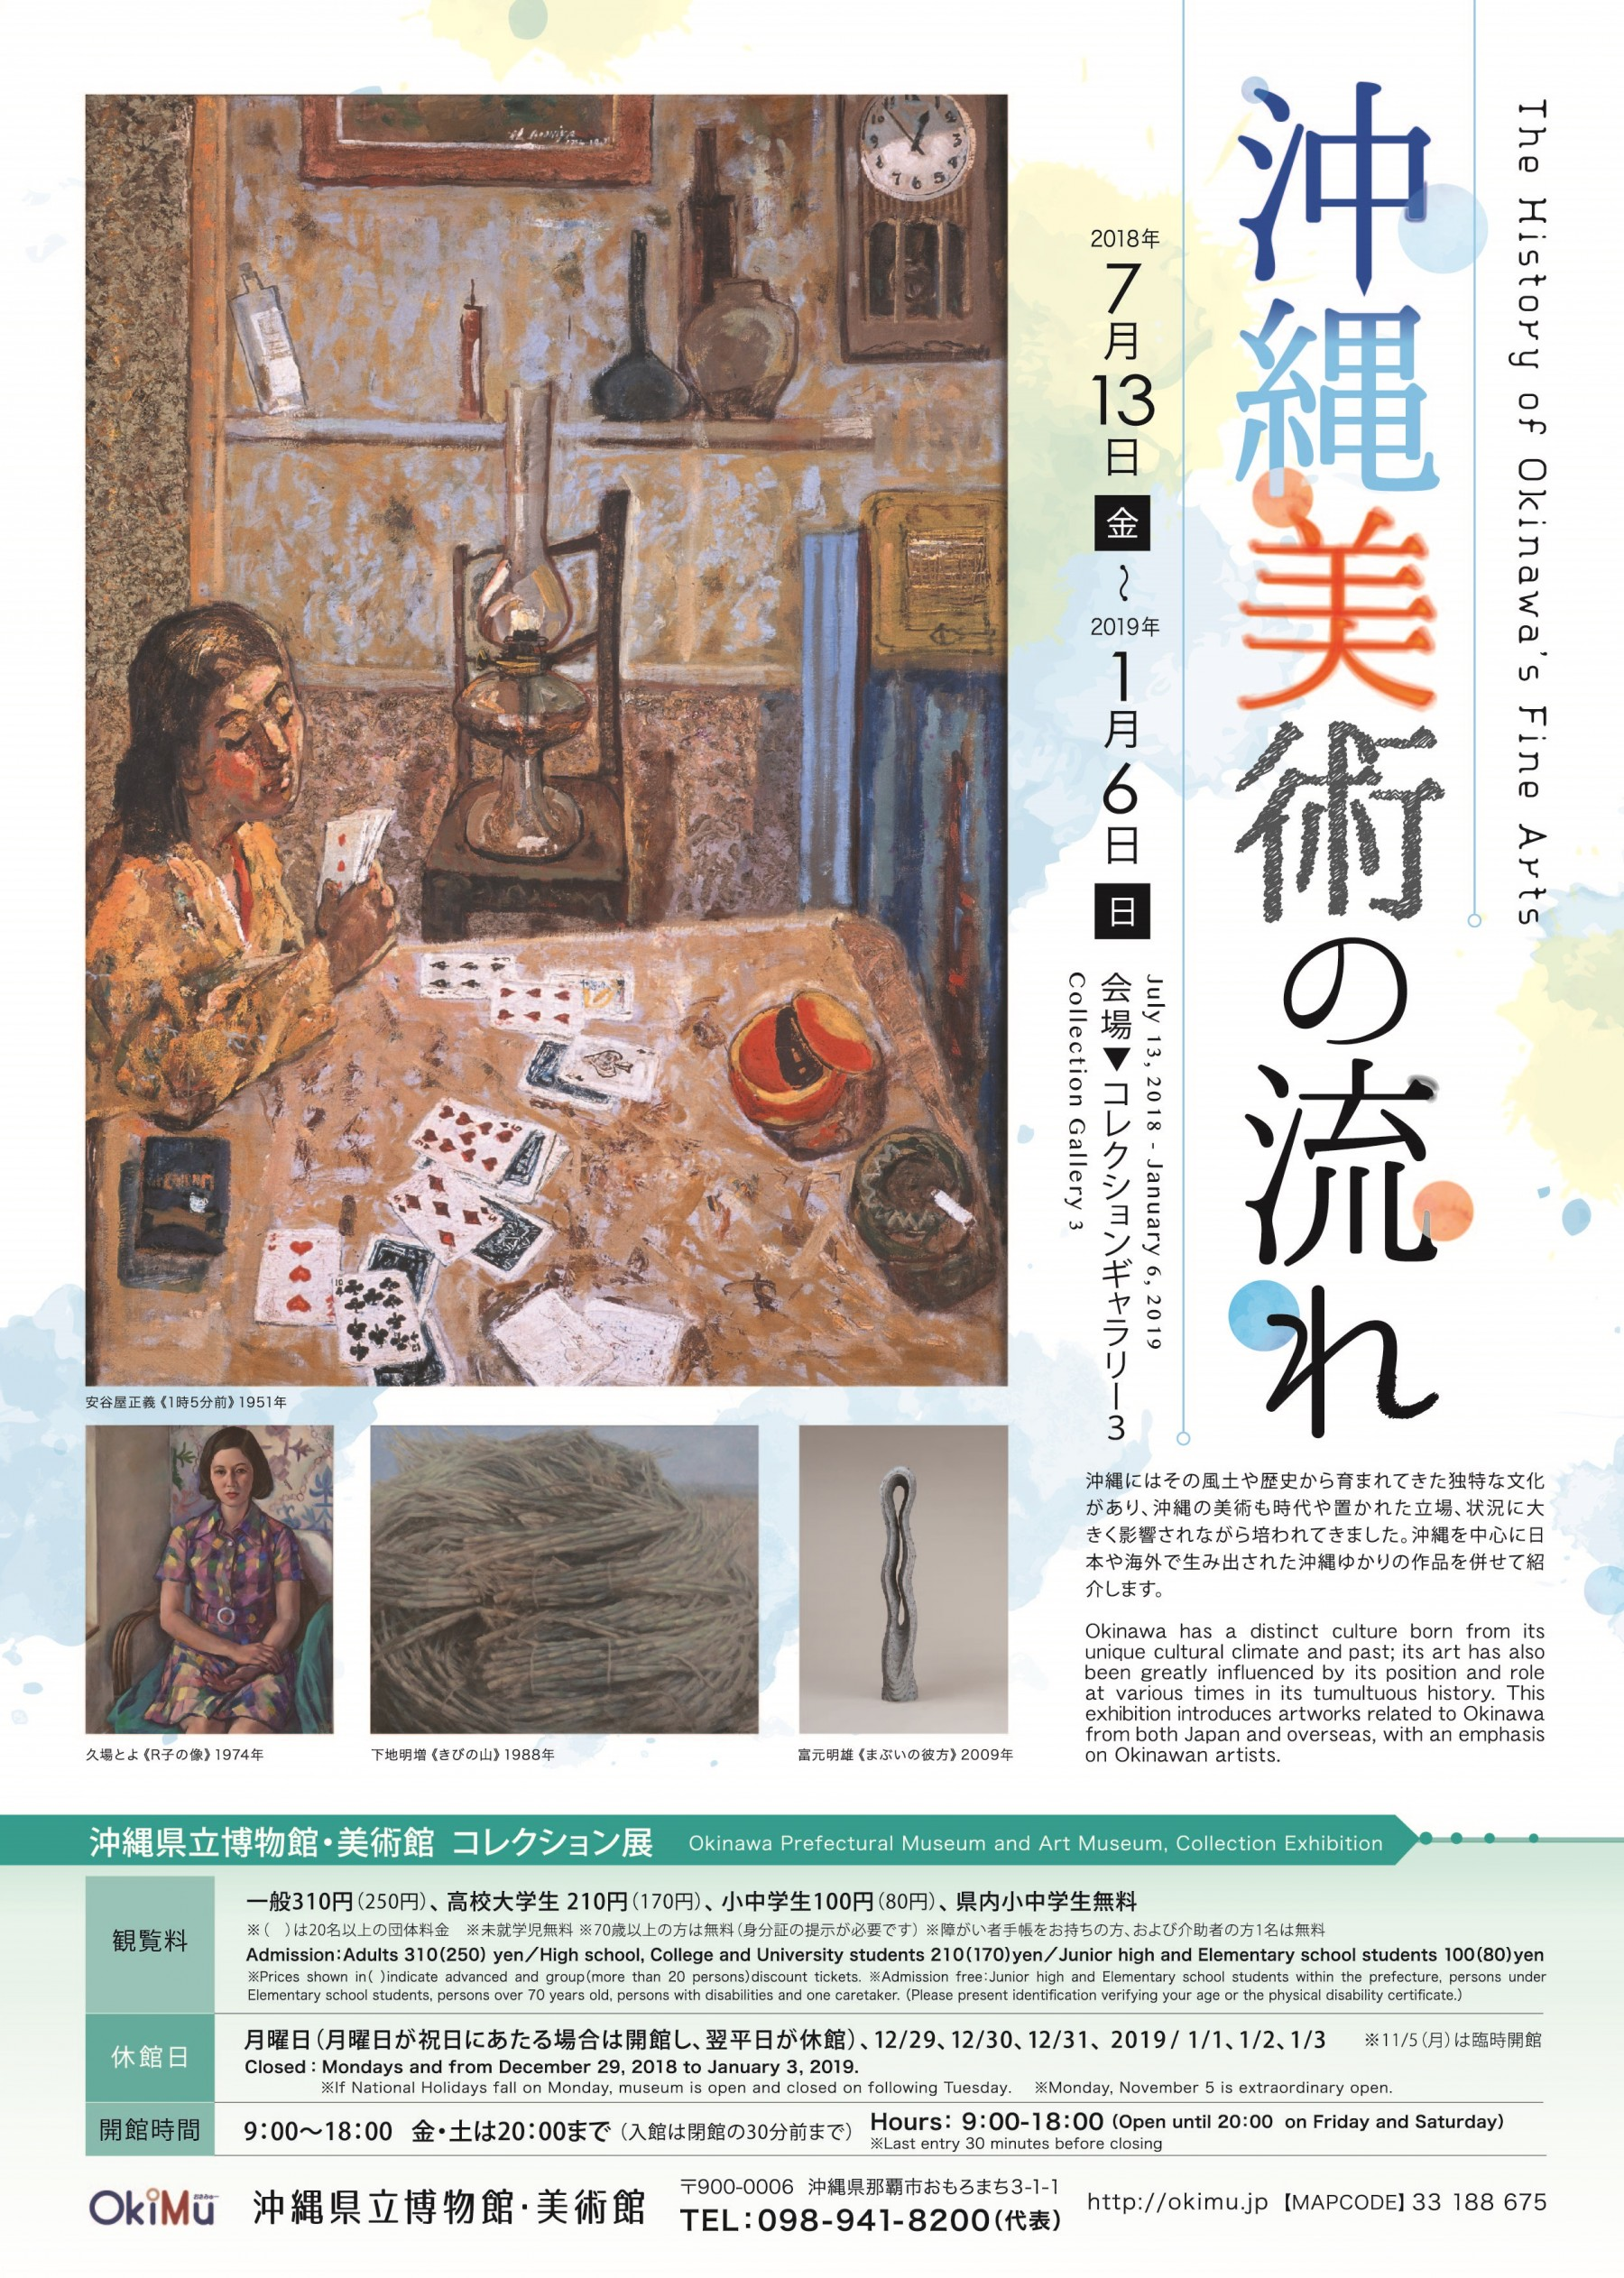 The History of Okinawa's fine arts